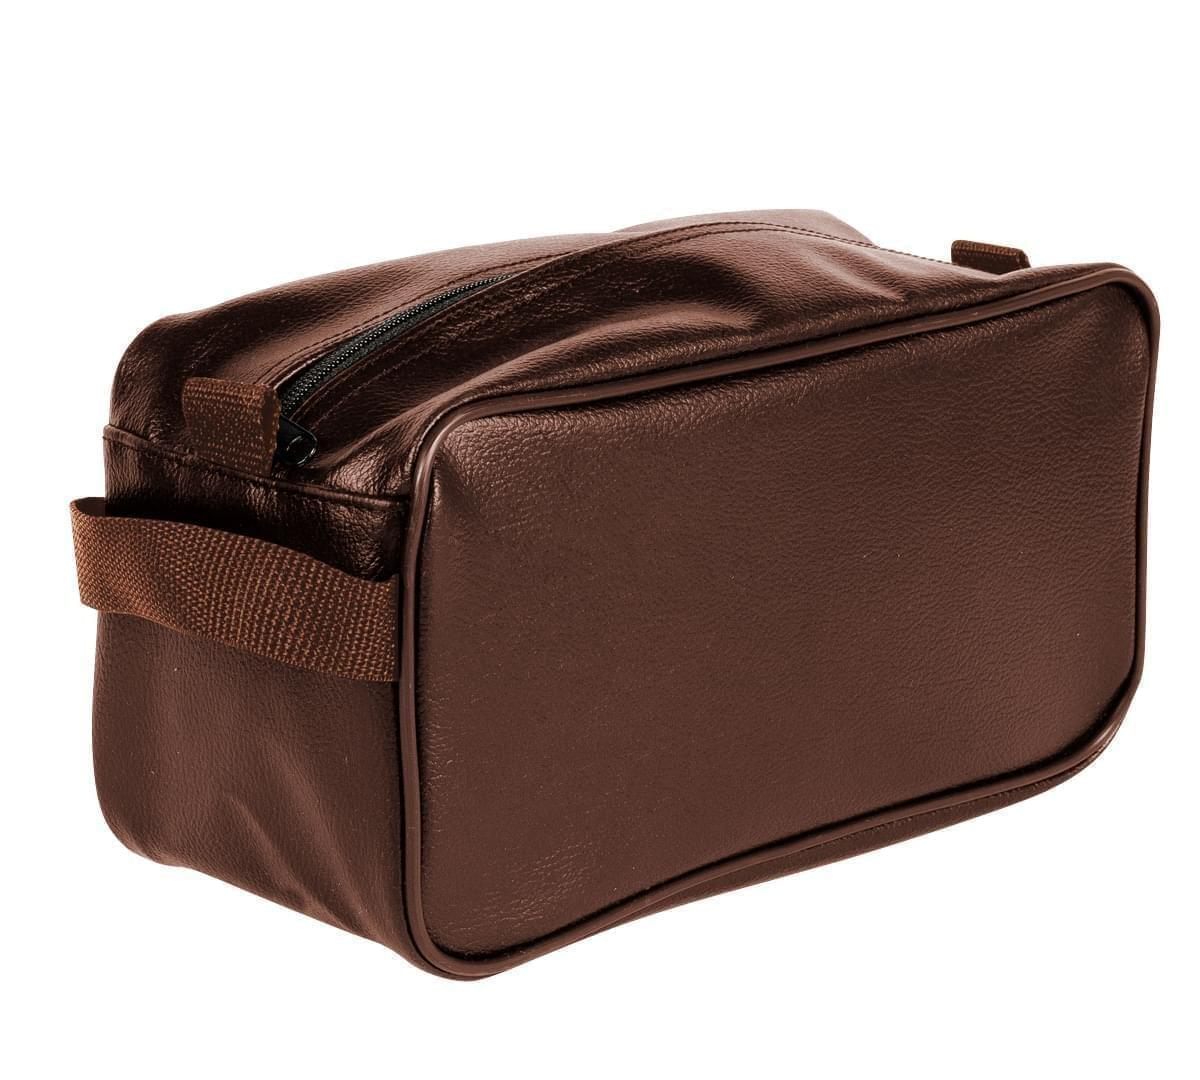 USA Made Cosmetic & Toiletry Cases, Brown-Brown, 3000996-APS